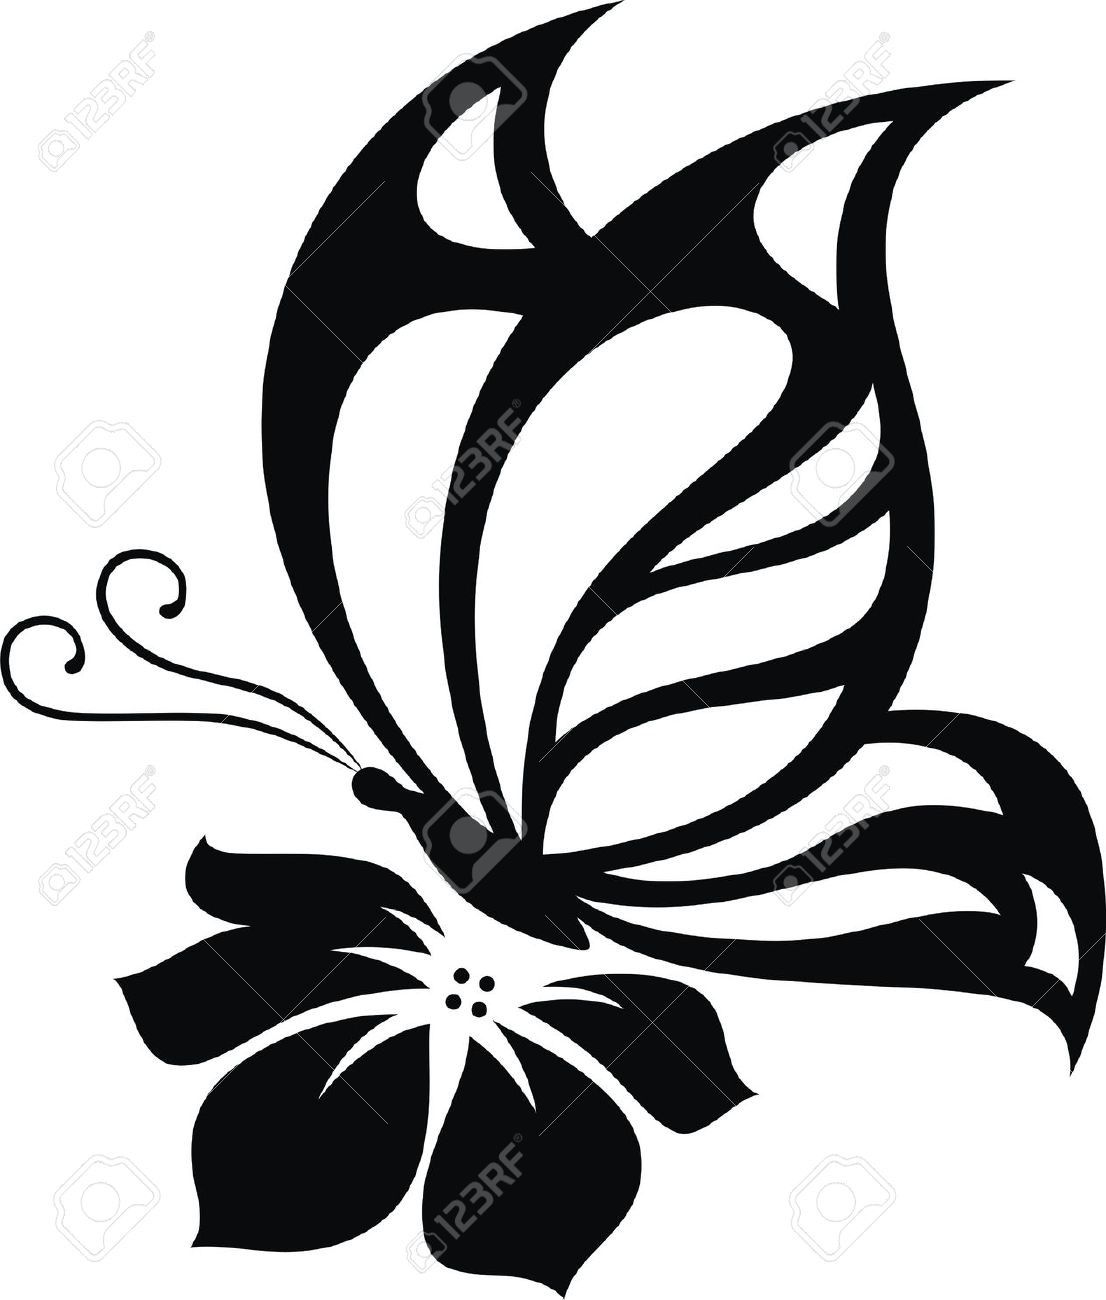 Lotus Flower Silhouette At Getdrawings Free For Personal Use